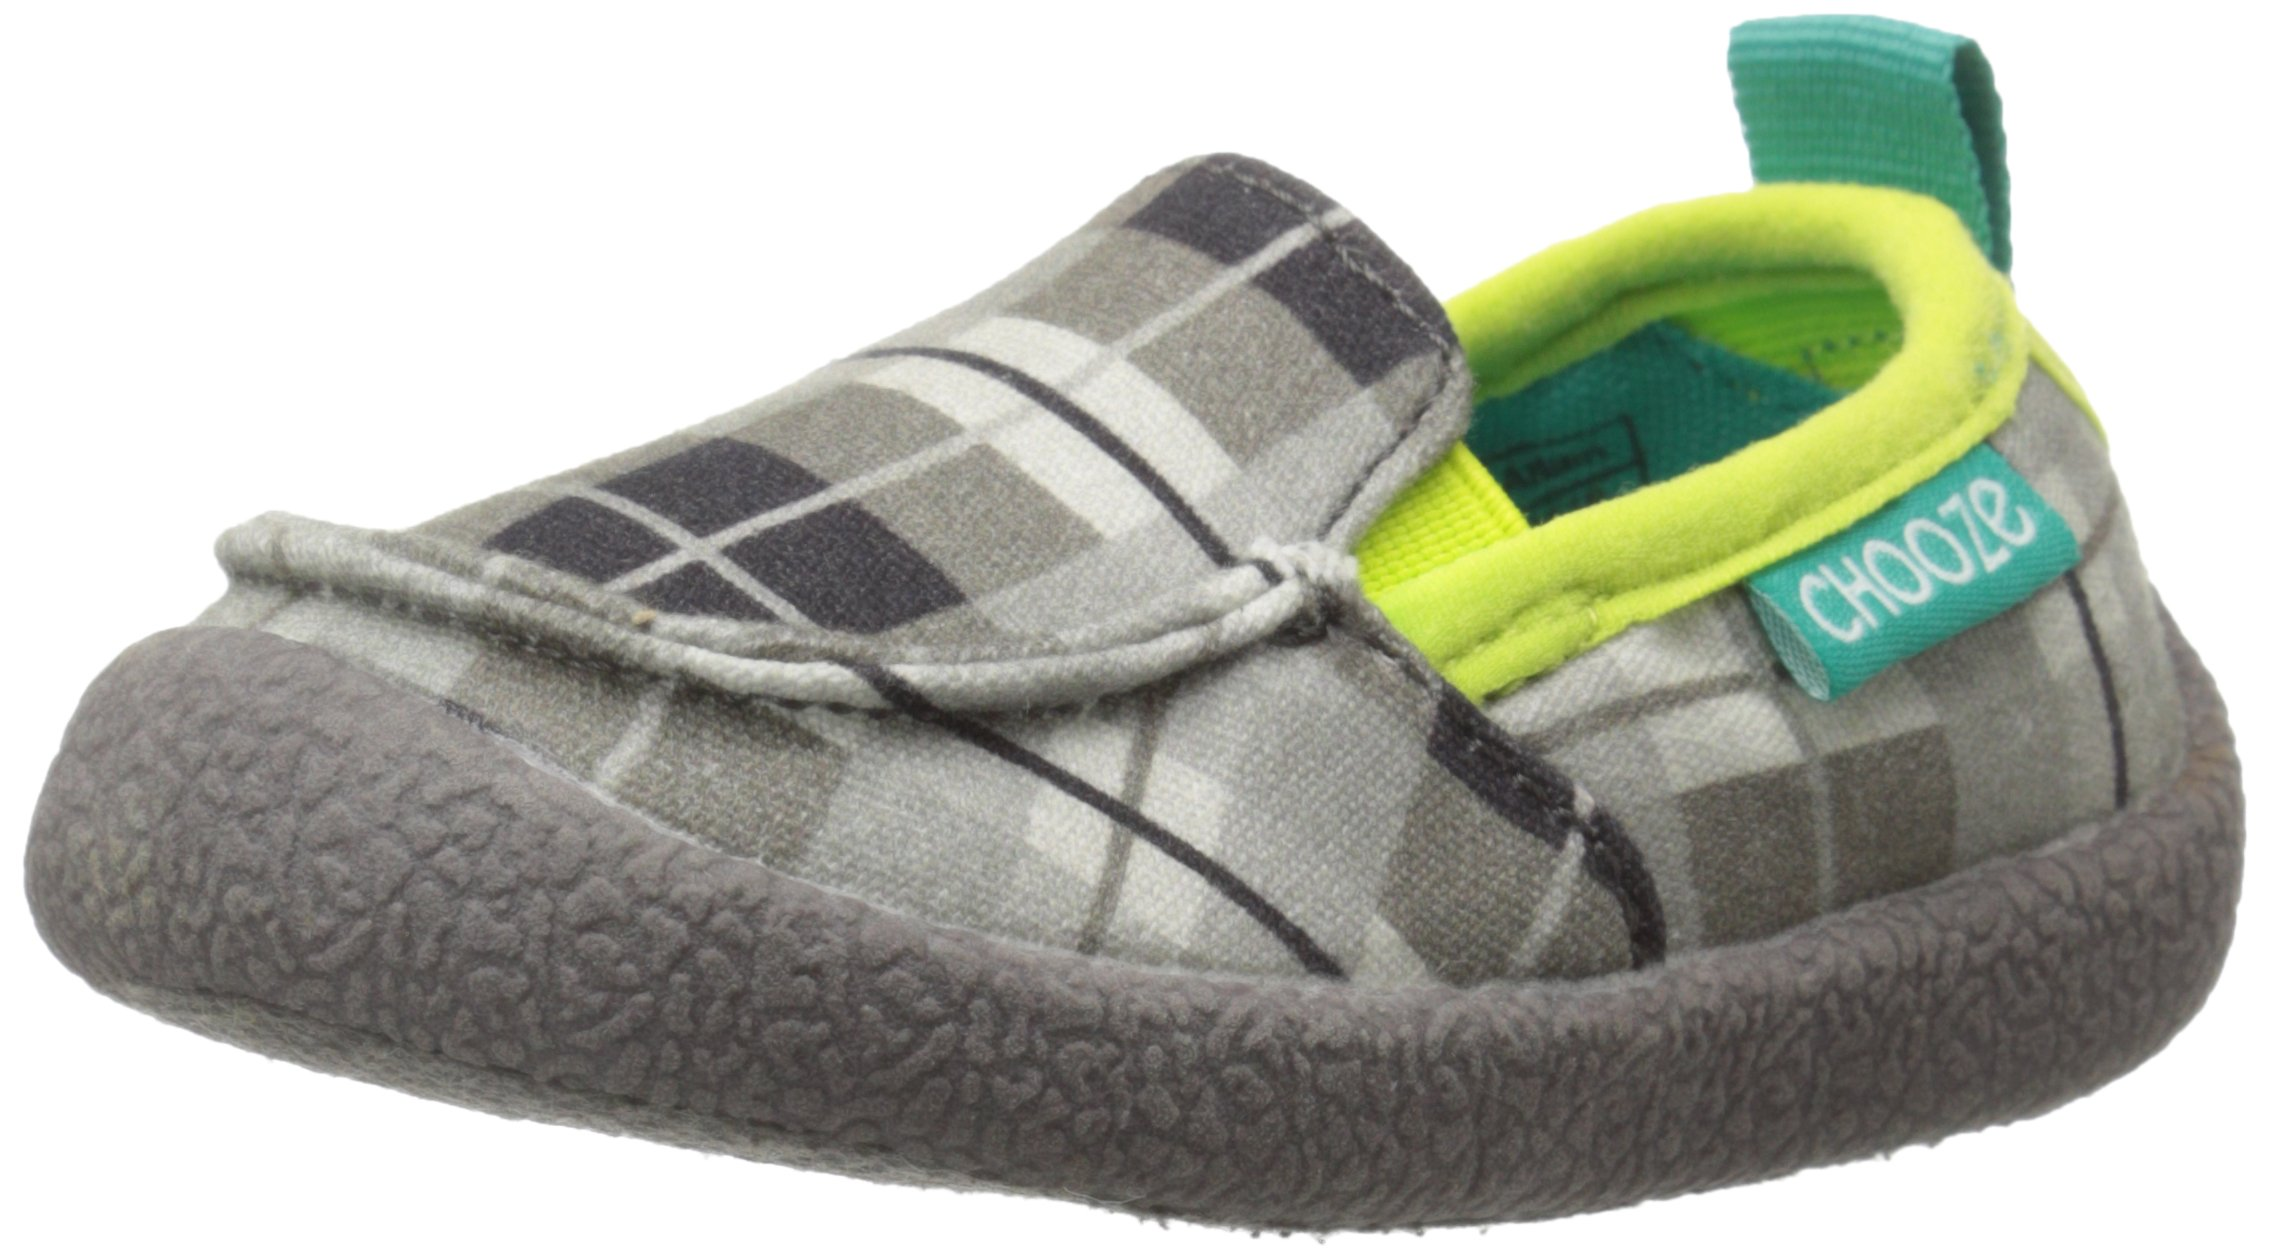 CHOOZE Boys' Scout Loafer, Attain, 4 M US Toddler